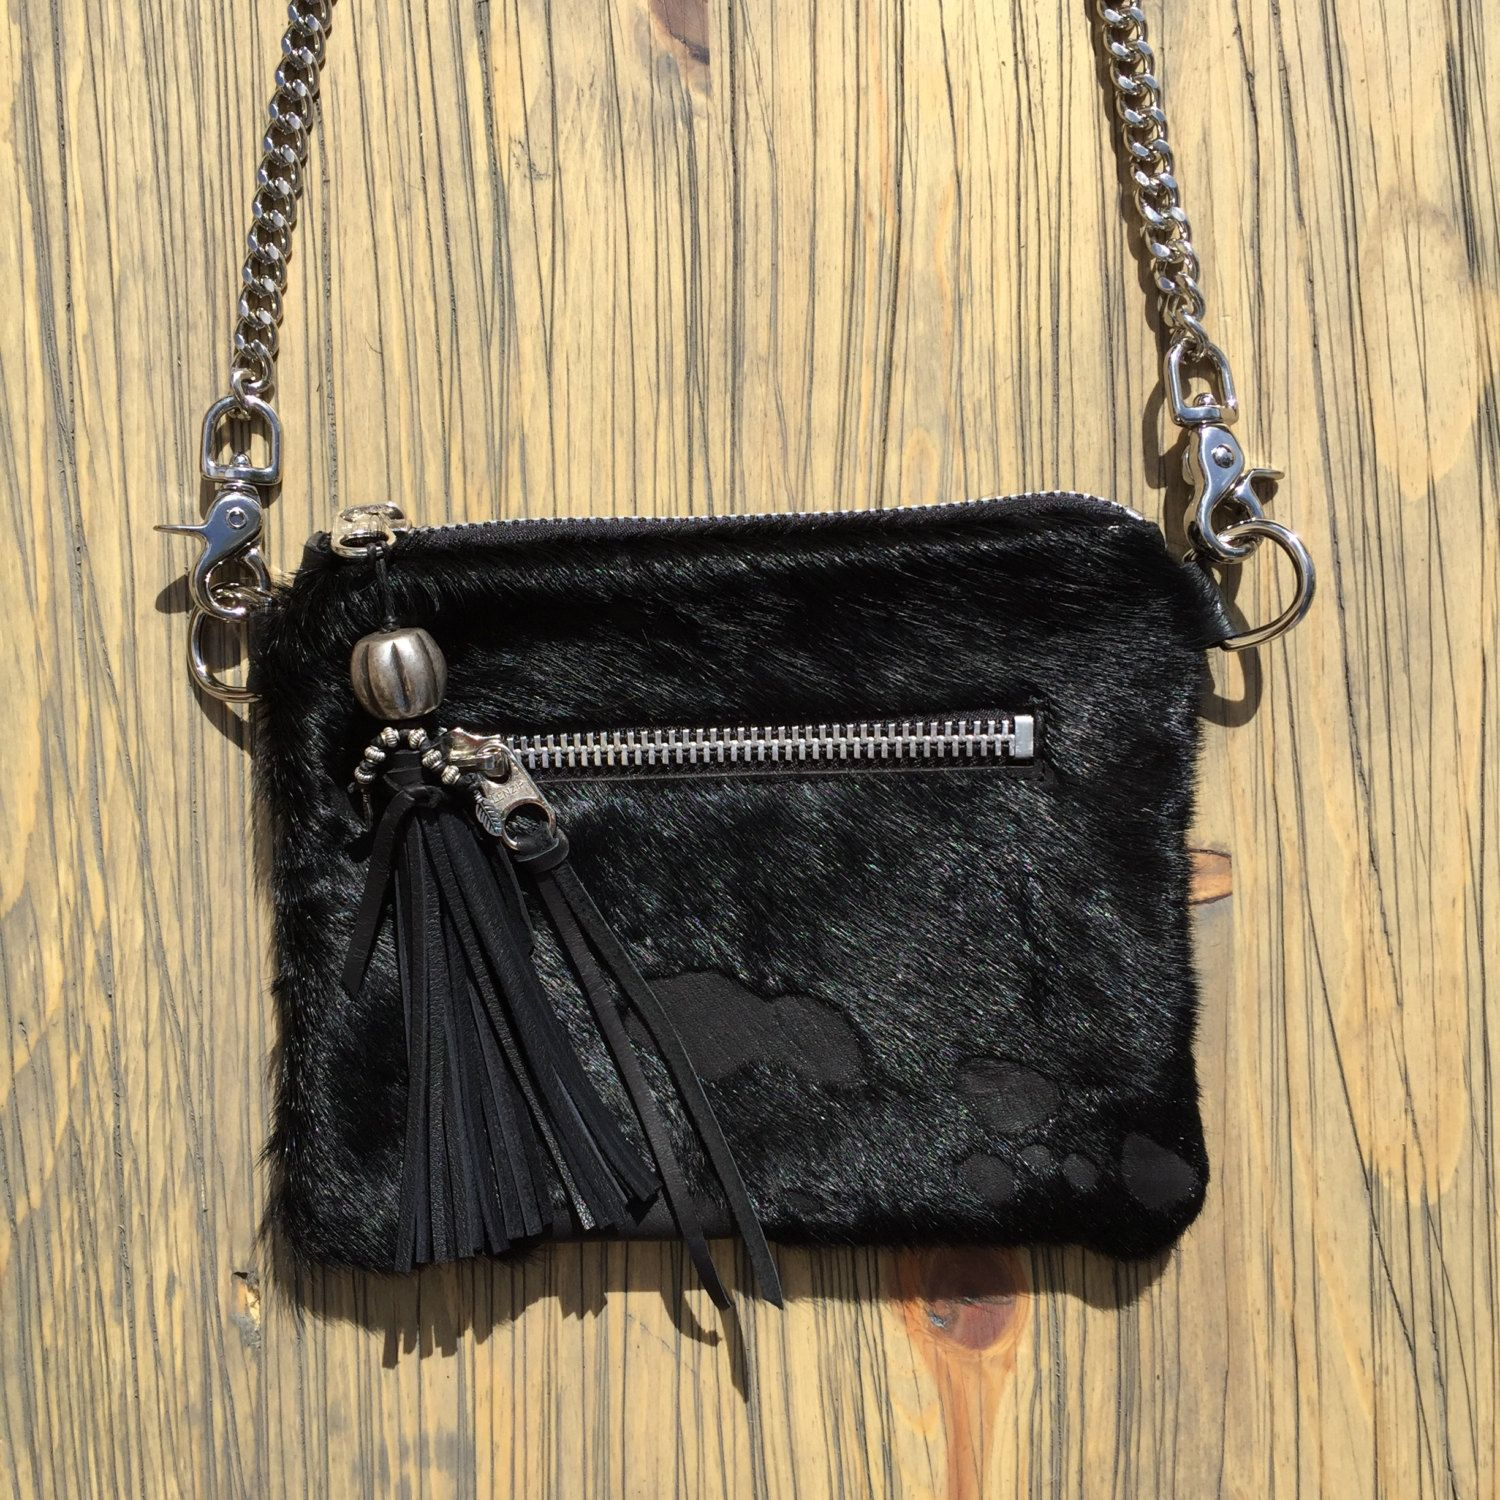 Acid Washed Black Hair On Cow Hide Cross Body Clutch Hip Bag